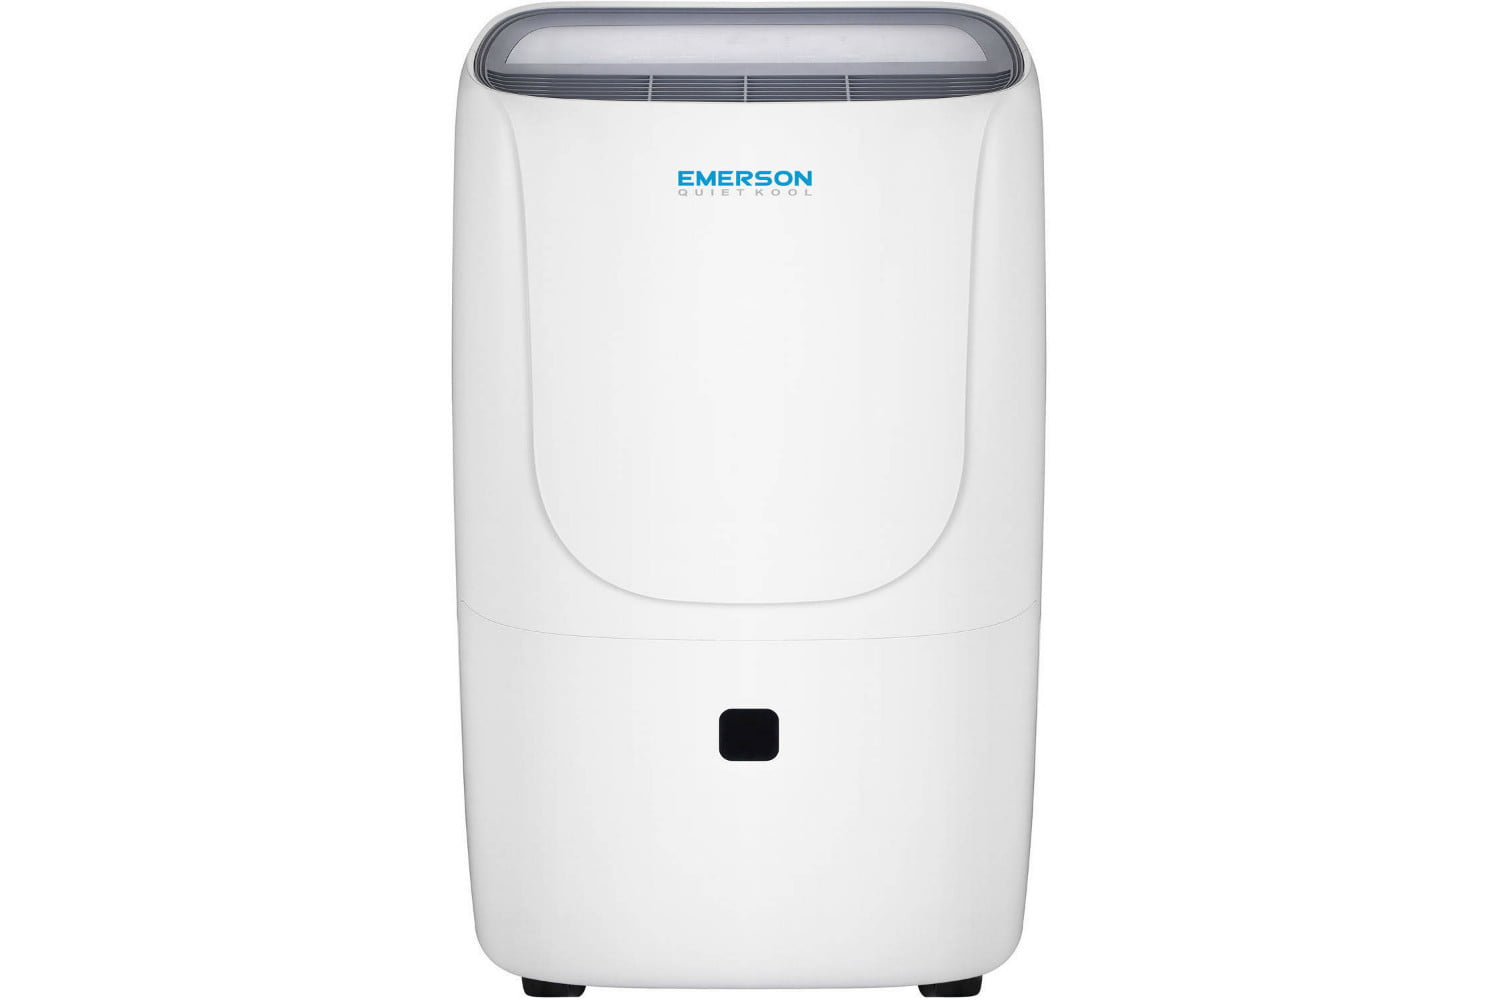 walmart drops prices for frigidaire ge and emerson dehumidifiers quiet kool 70 pint dehumidifier with internal pump 1